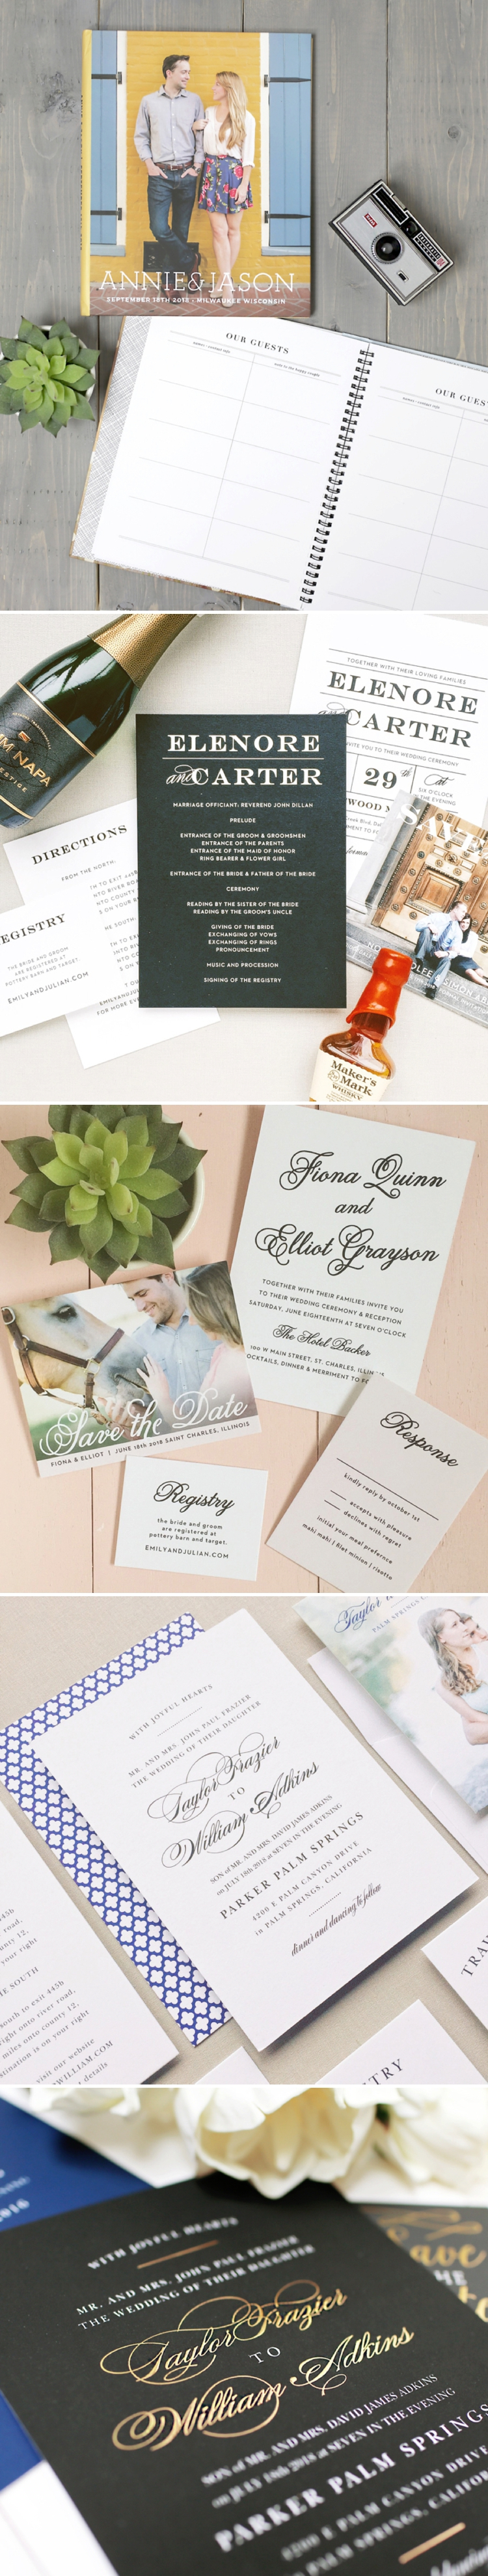 basic-invite-wedding-stationery_0795